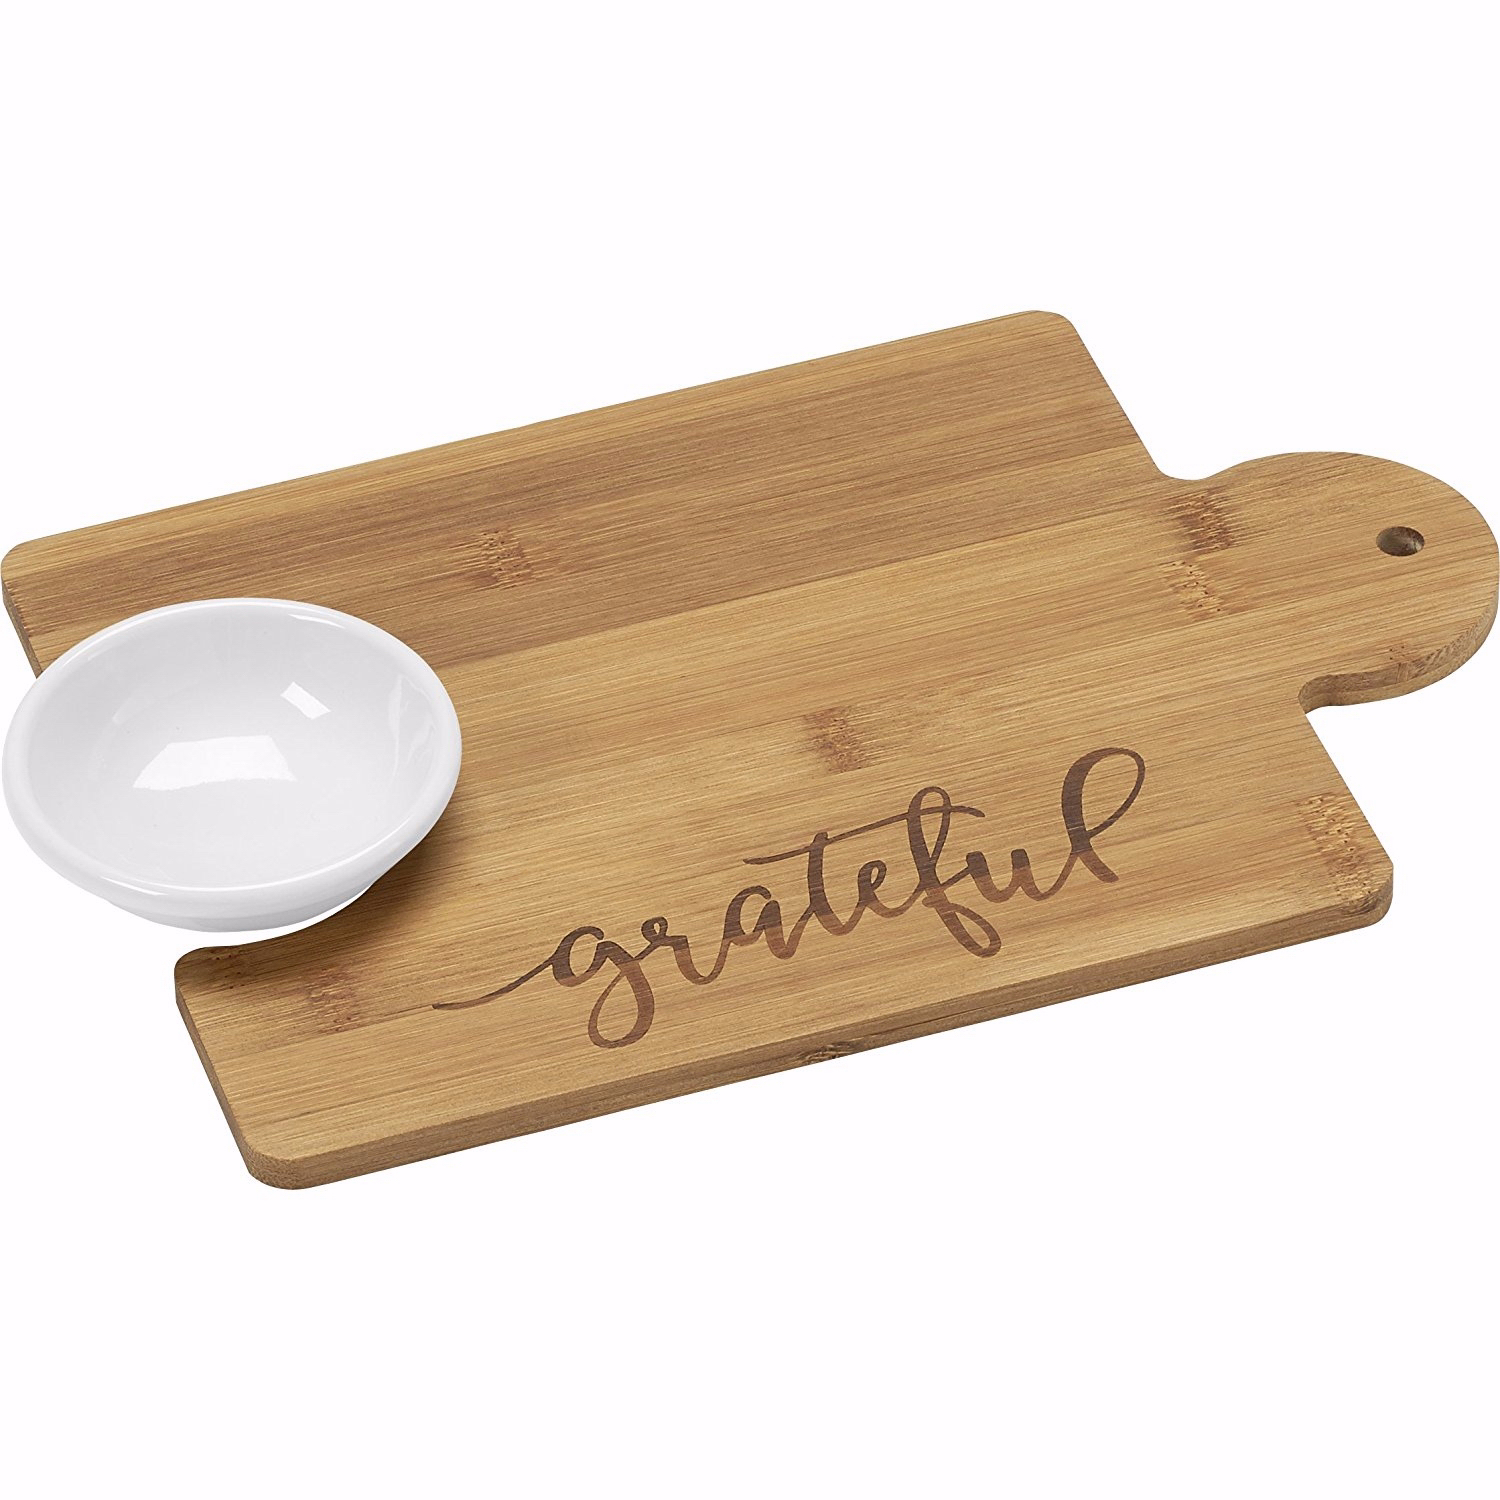 Bountiful Blessings by Precious Moments 171496 Grateful Puzzle Piece Bamboo Cutting Board 12-inches by 8-inches